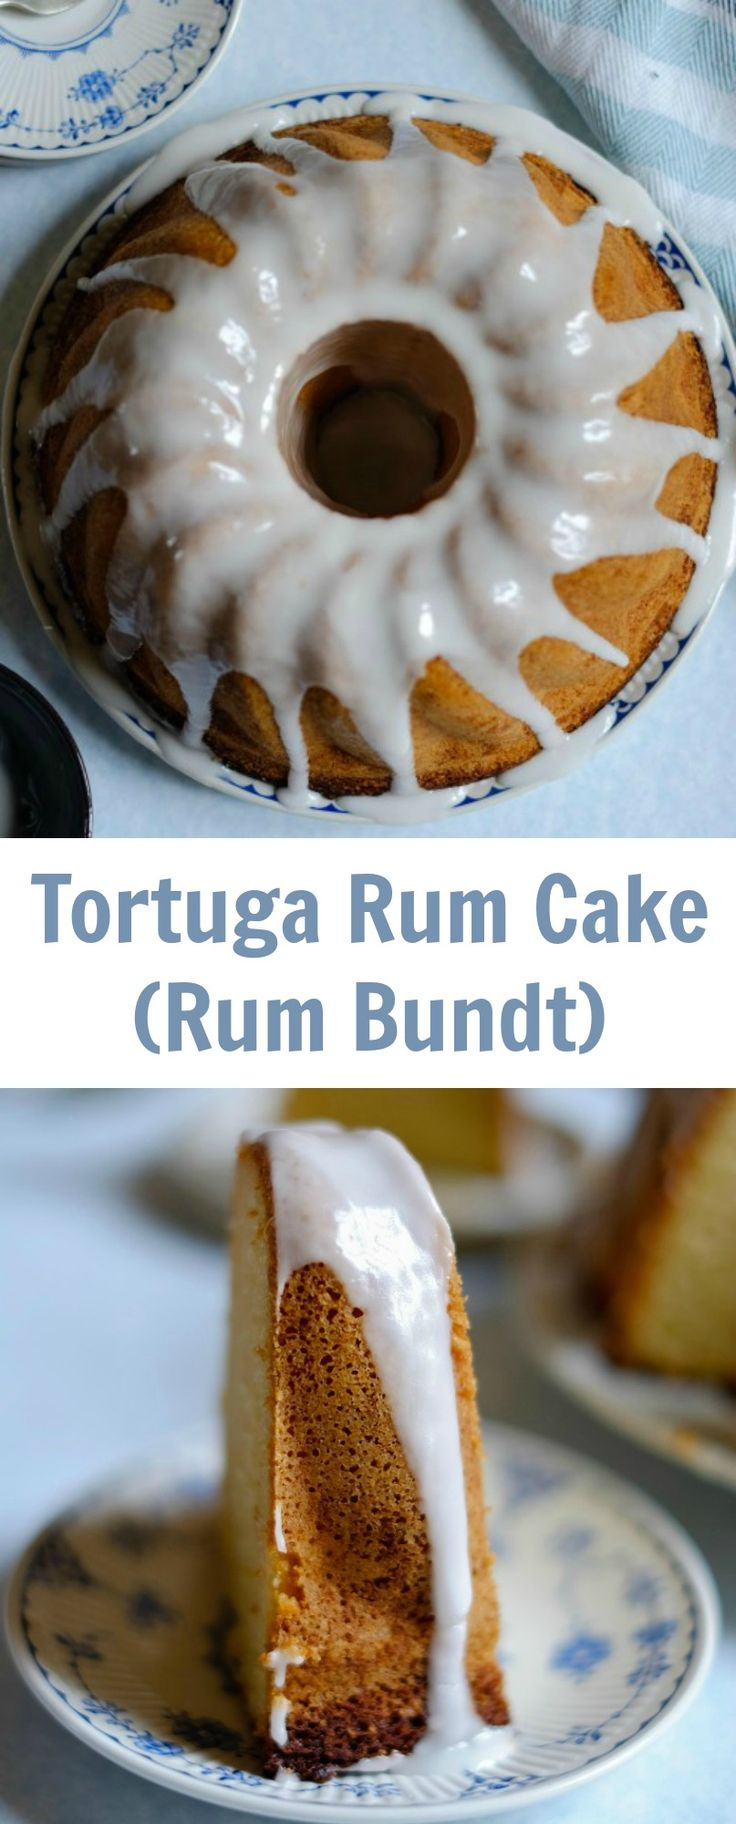 Rum Bundt or Tortuga Rum Cake is a Caribbean cake made of rum infused cake and a delicious rum icing. This rum cake tastes even better the next day.